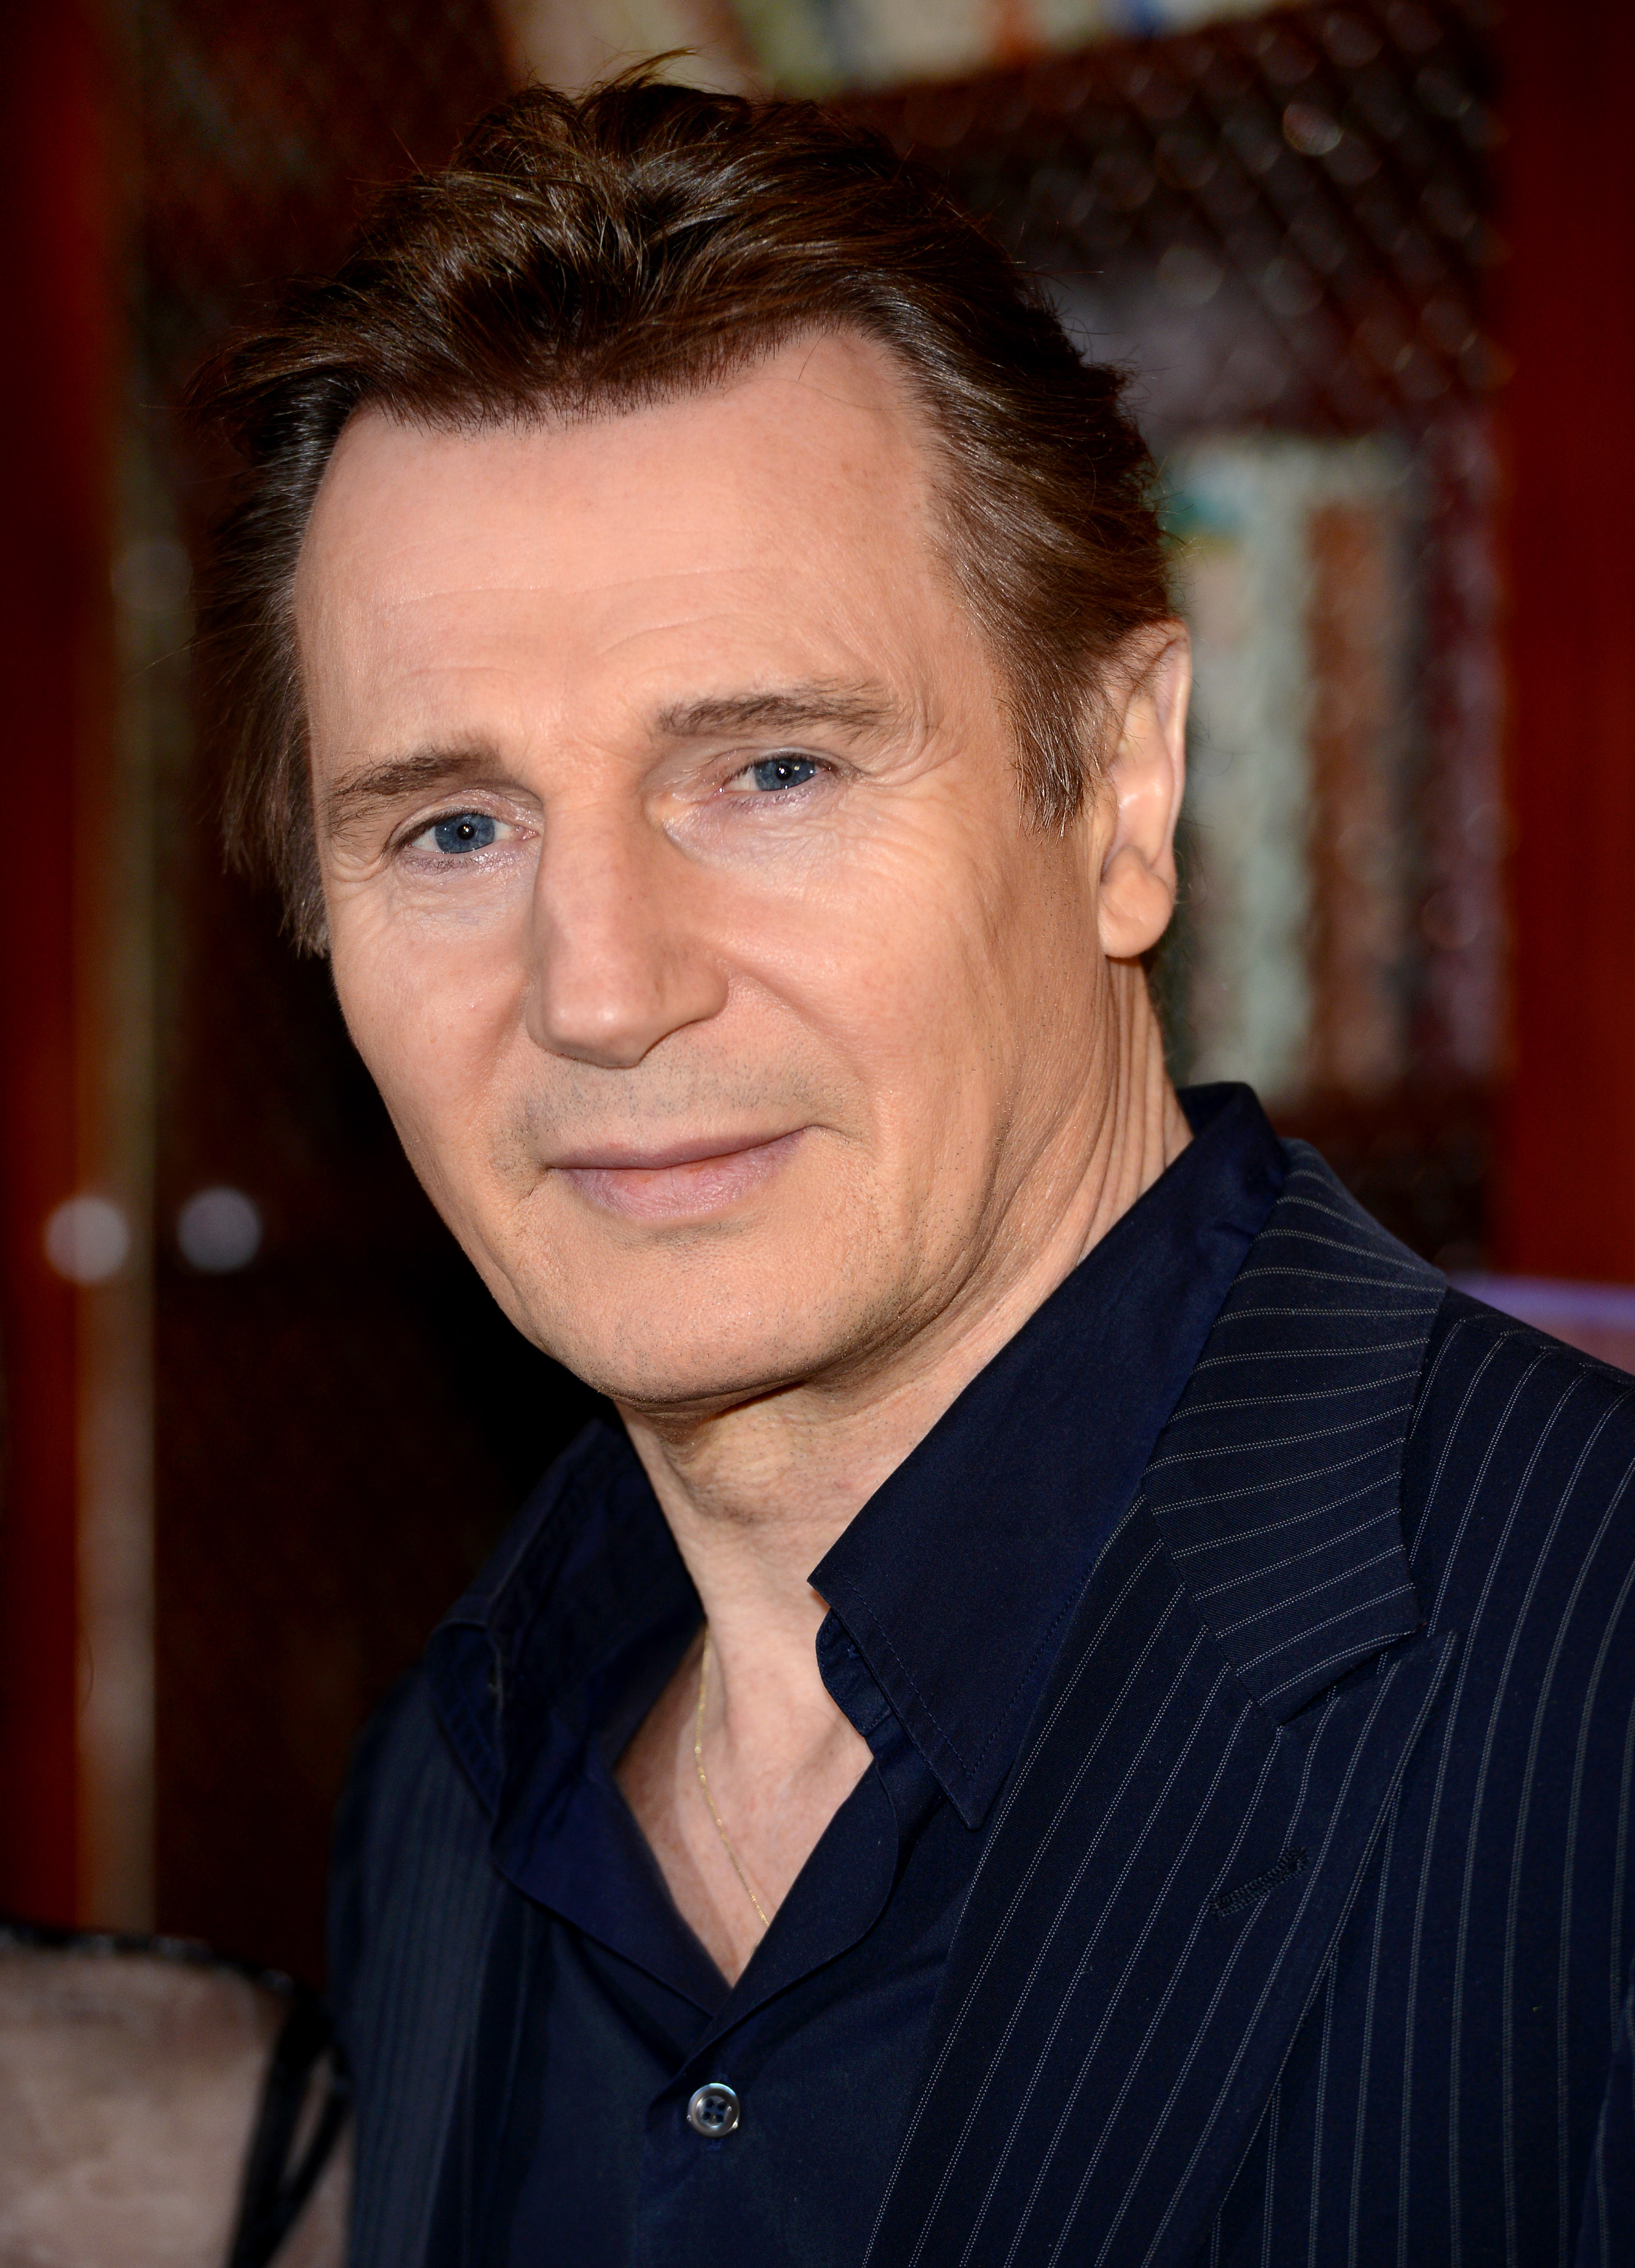 Liam Neeson attends a photocall for the film  Non Stop  at The Dorchester on January 30, 2014 in London, England.